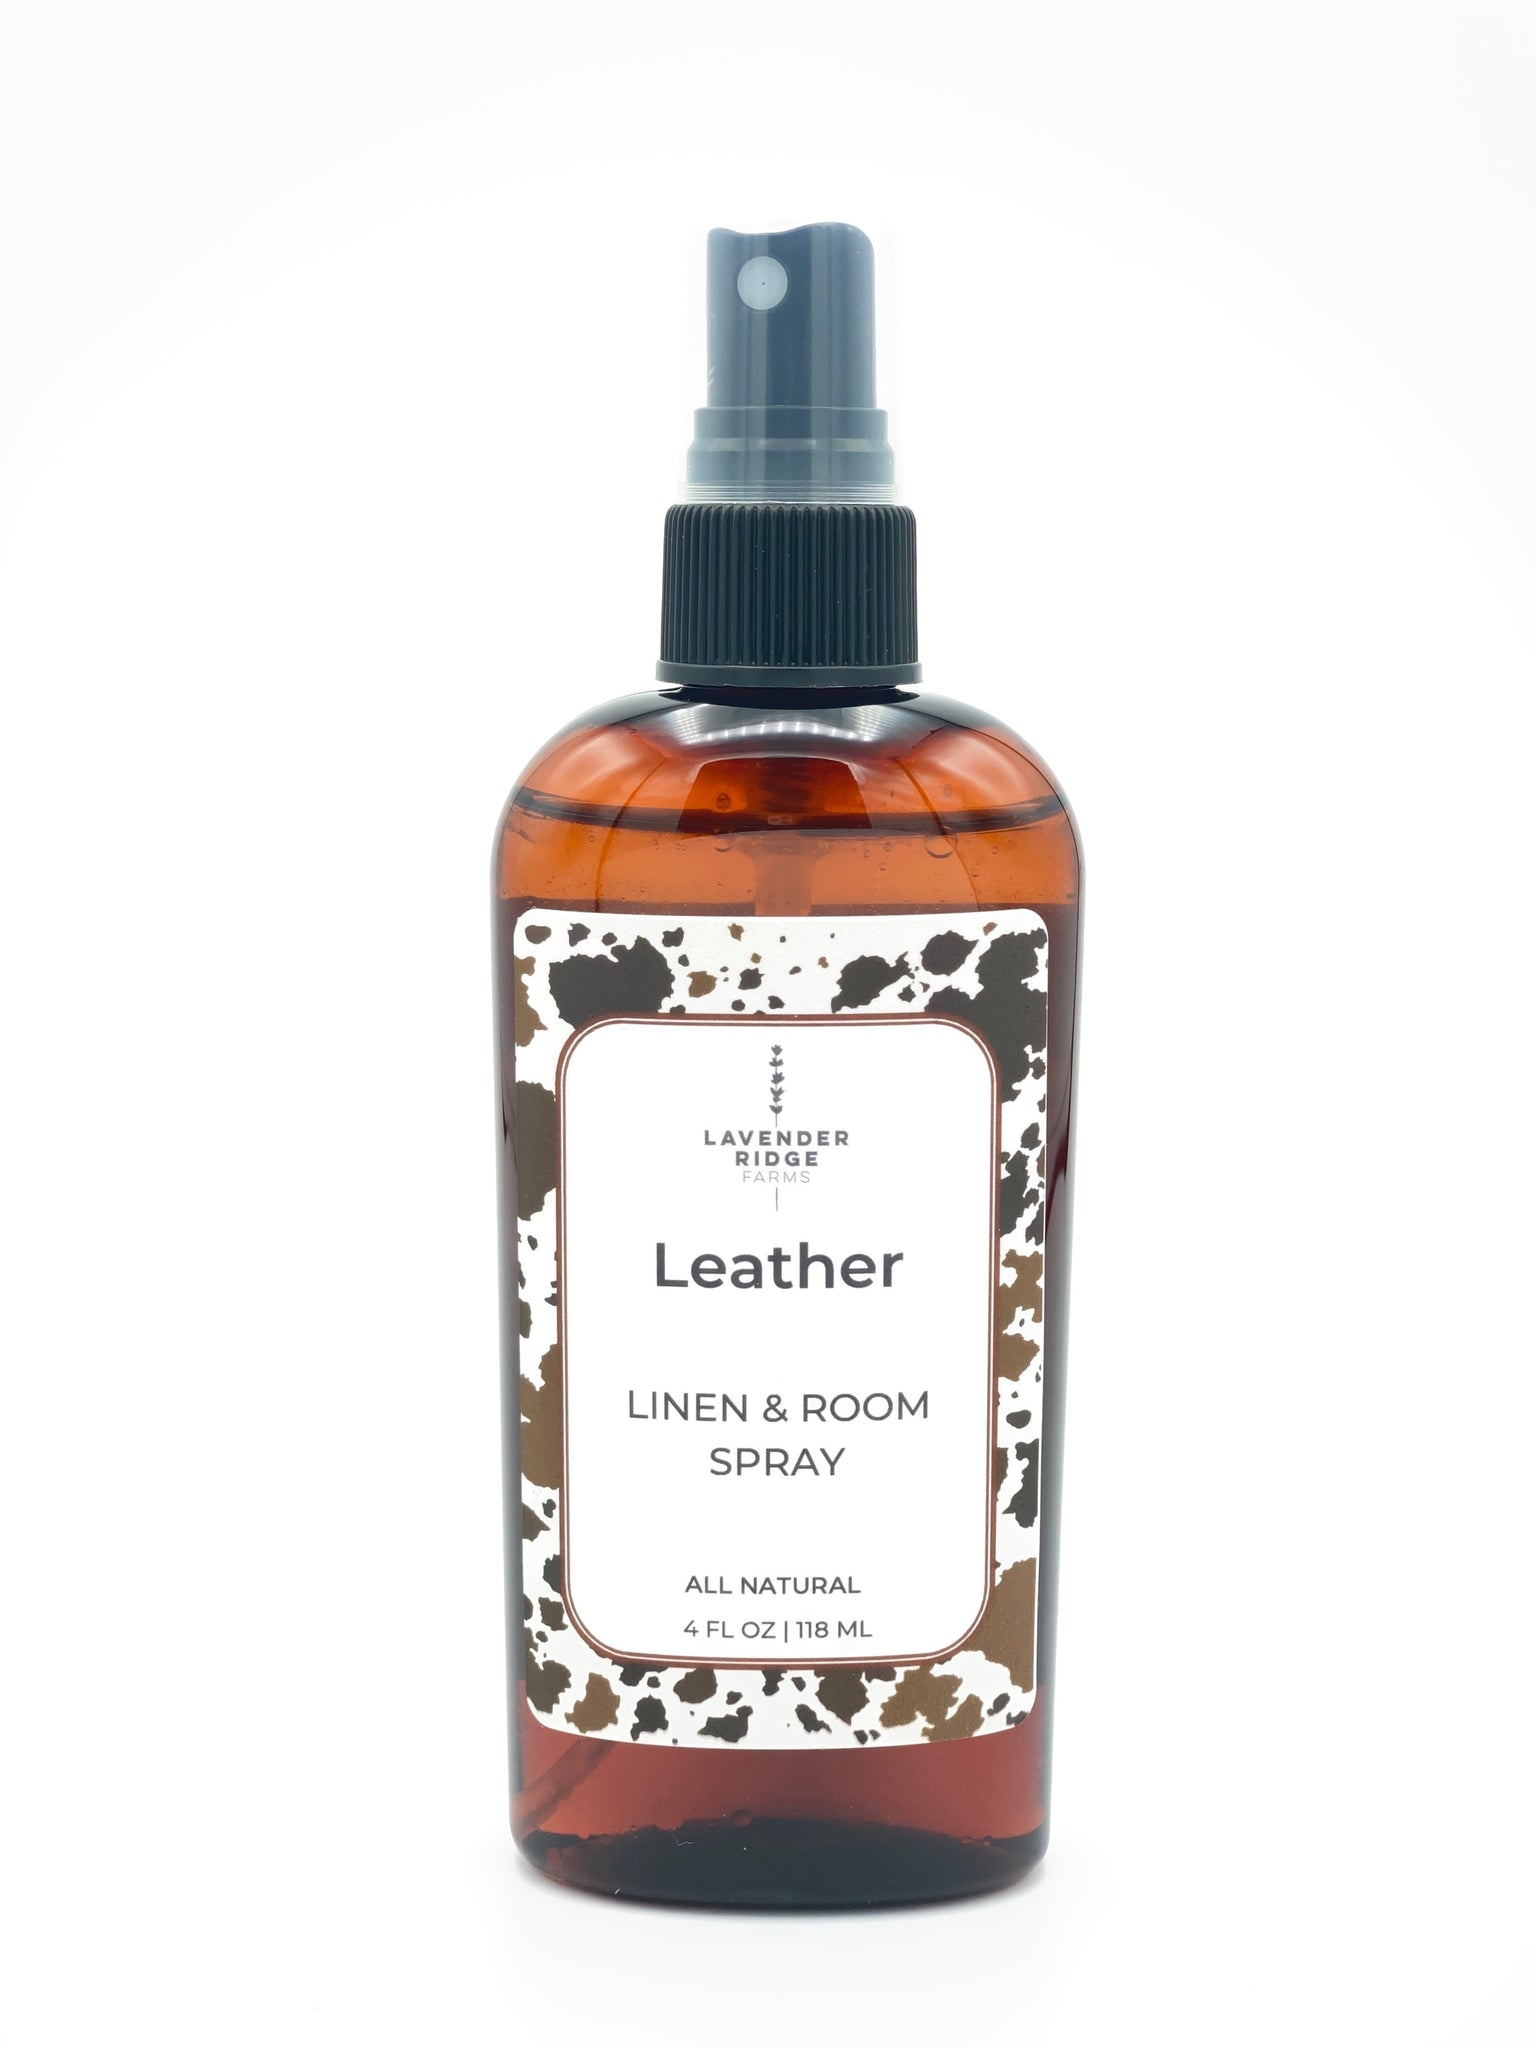 Linen & Room Spray - Leather